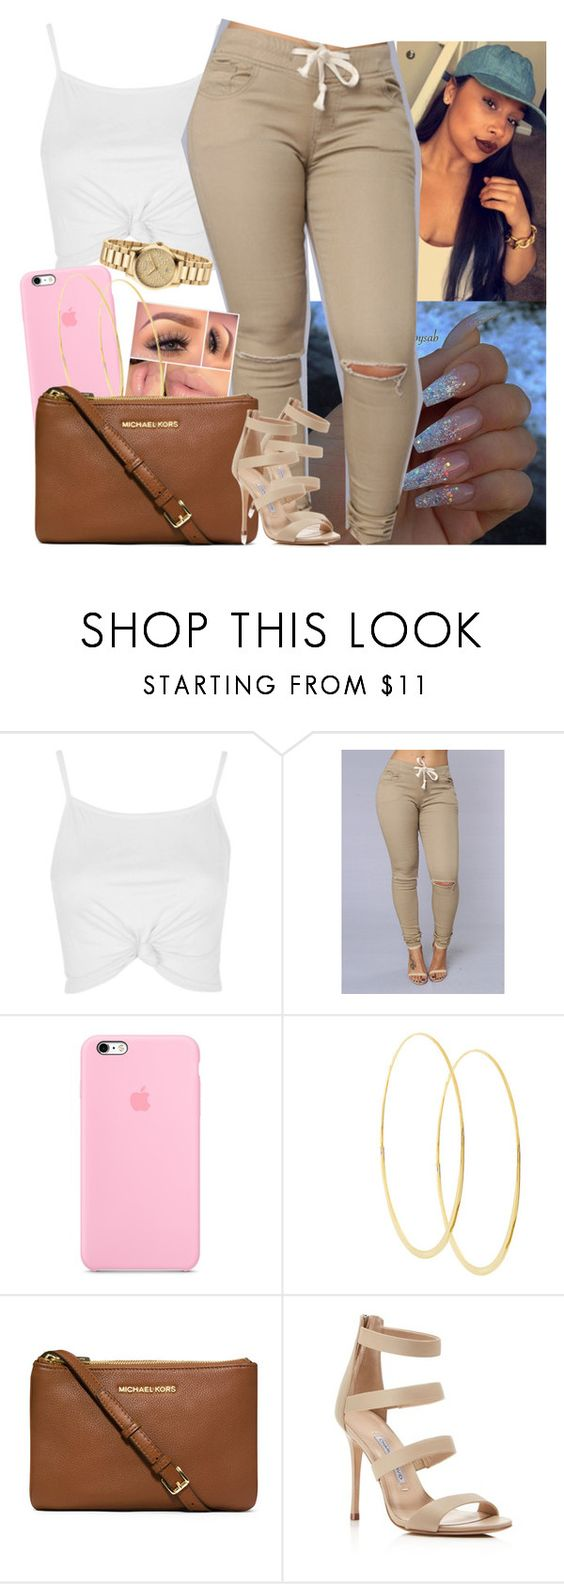 """""""Don't stop get it get it 😂"""" by saucinonyou999 ❤ liked on Polyvore featuring Topshop, Lana, MICHAEL Michael Kors, Charles David and Gucci"""